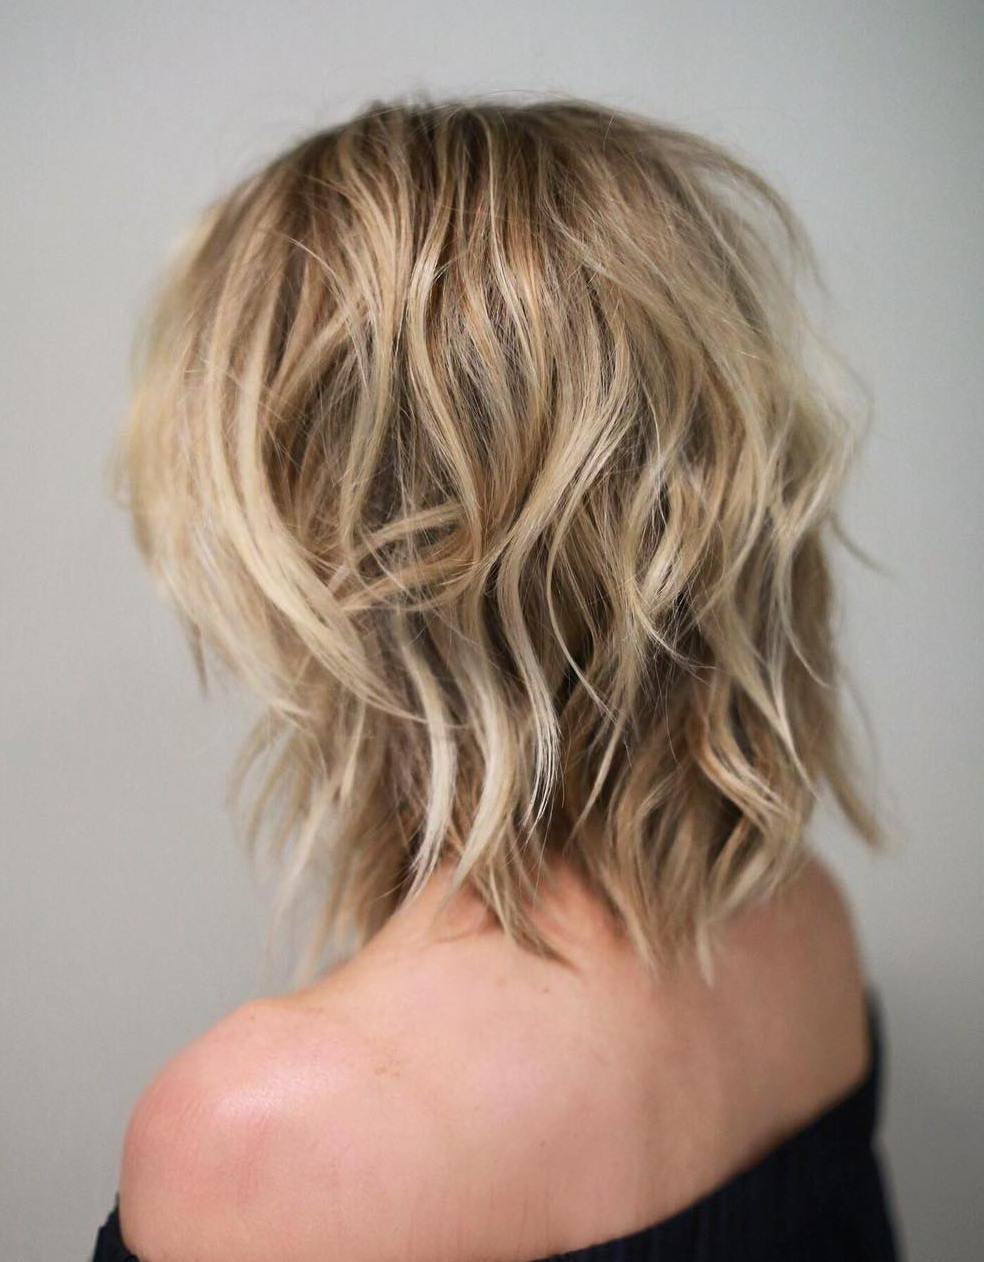 Most Current Sleek Mid Length Haircuts With Shaggy Ends Pertaining To 21 Fabulous Short Shaggy Haircuts For Women – Haircuts (View 10 of 20)